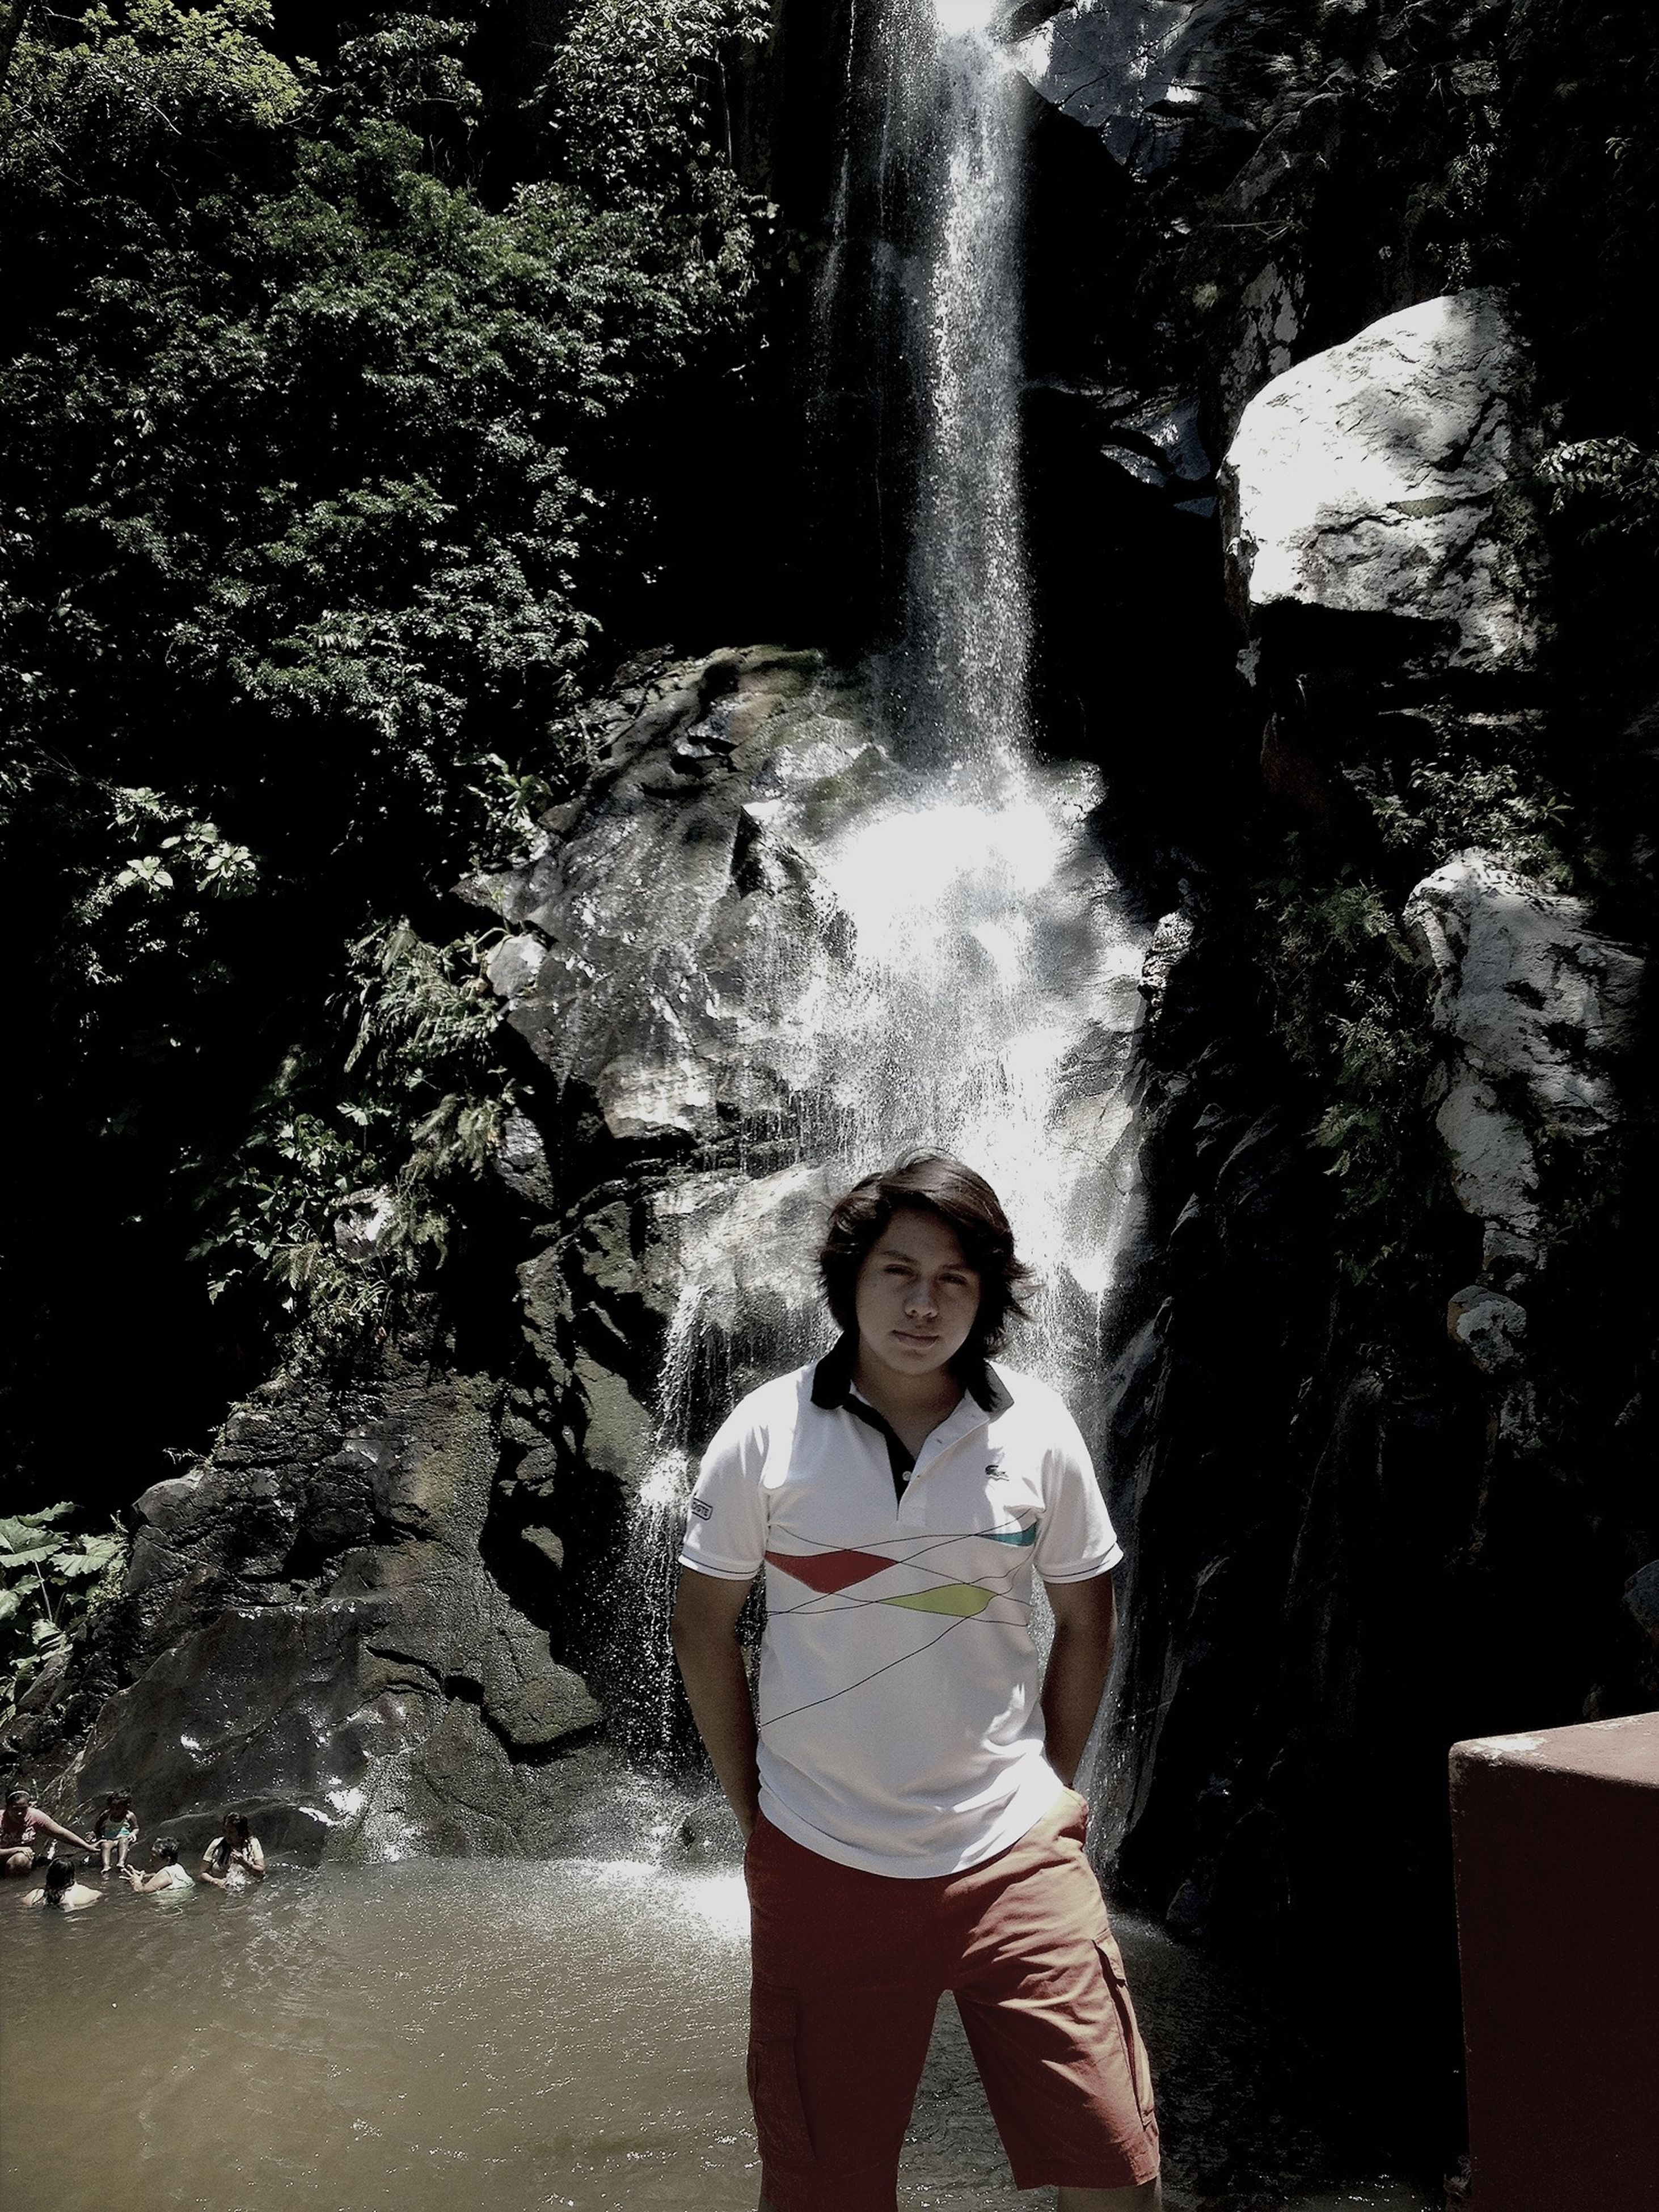 lifestyles, leisure activity, person, casual clothing, standing, water, young adult, portrait, looking at camera, rock - object, young women, front view, smiling, three quarter length, happiness, nature, full length, day